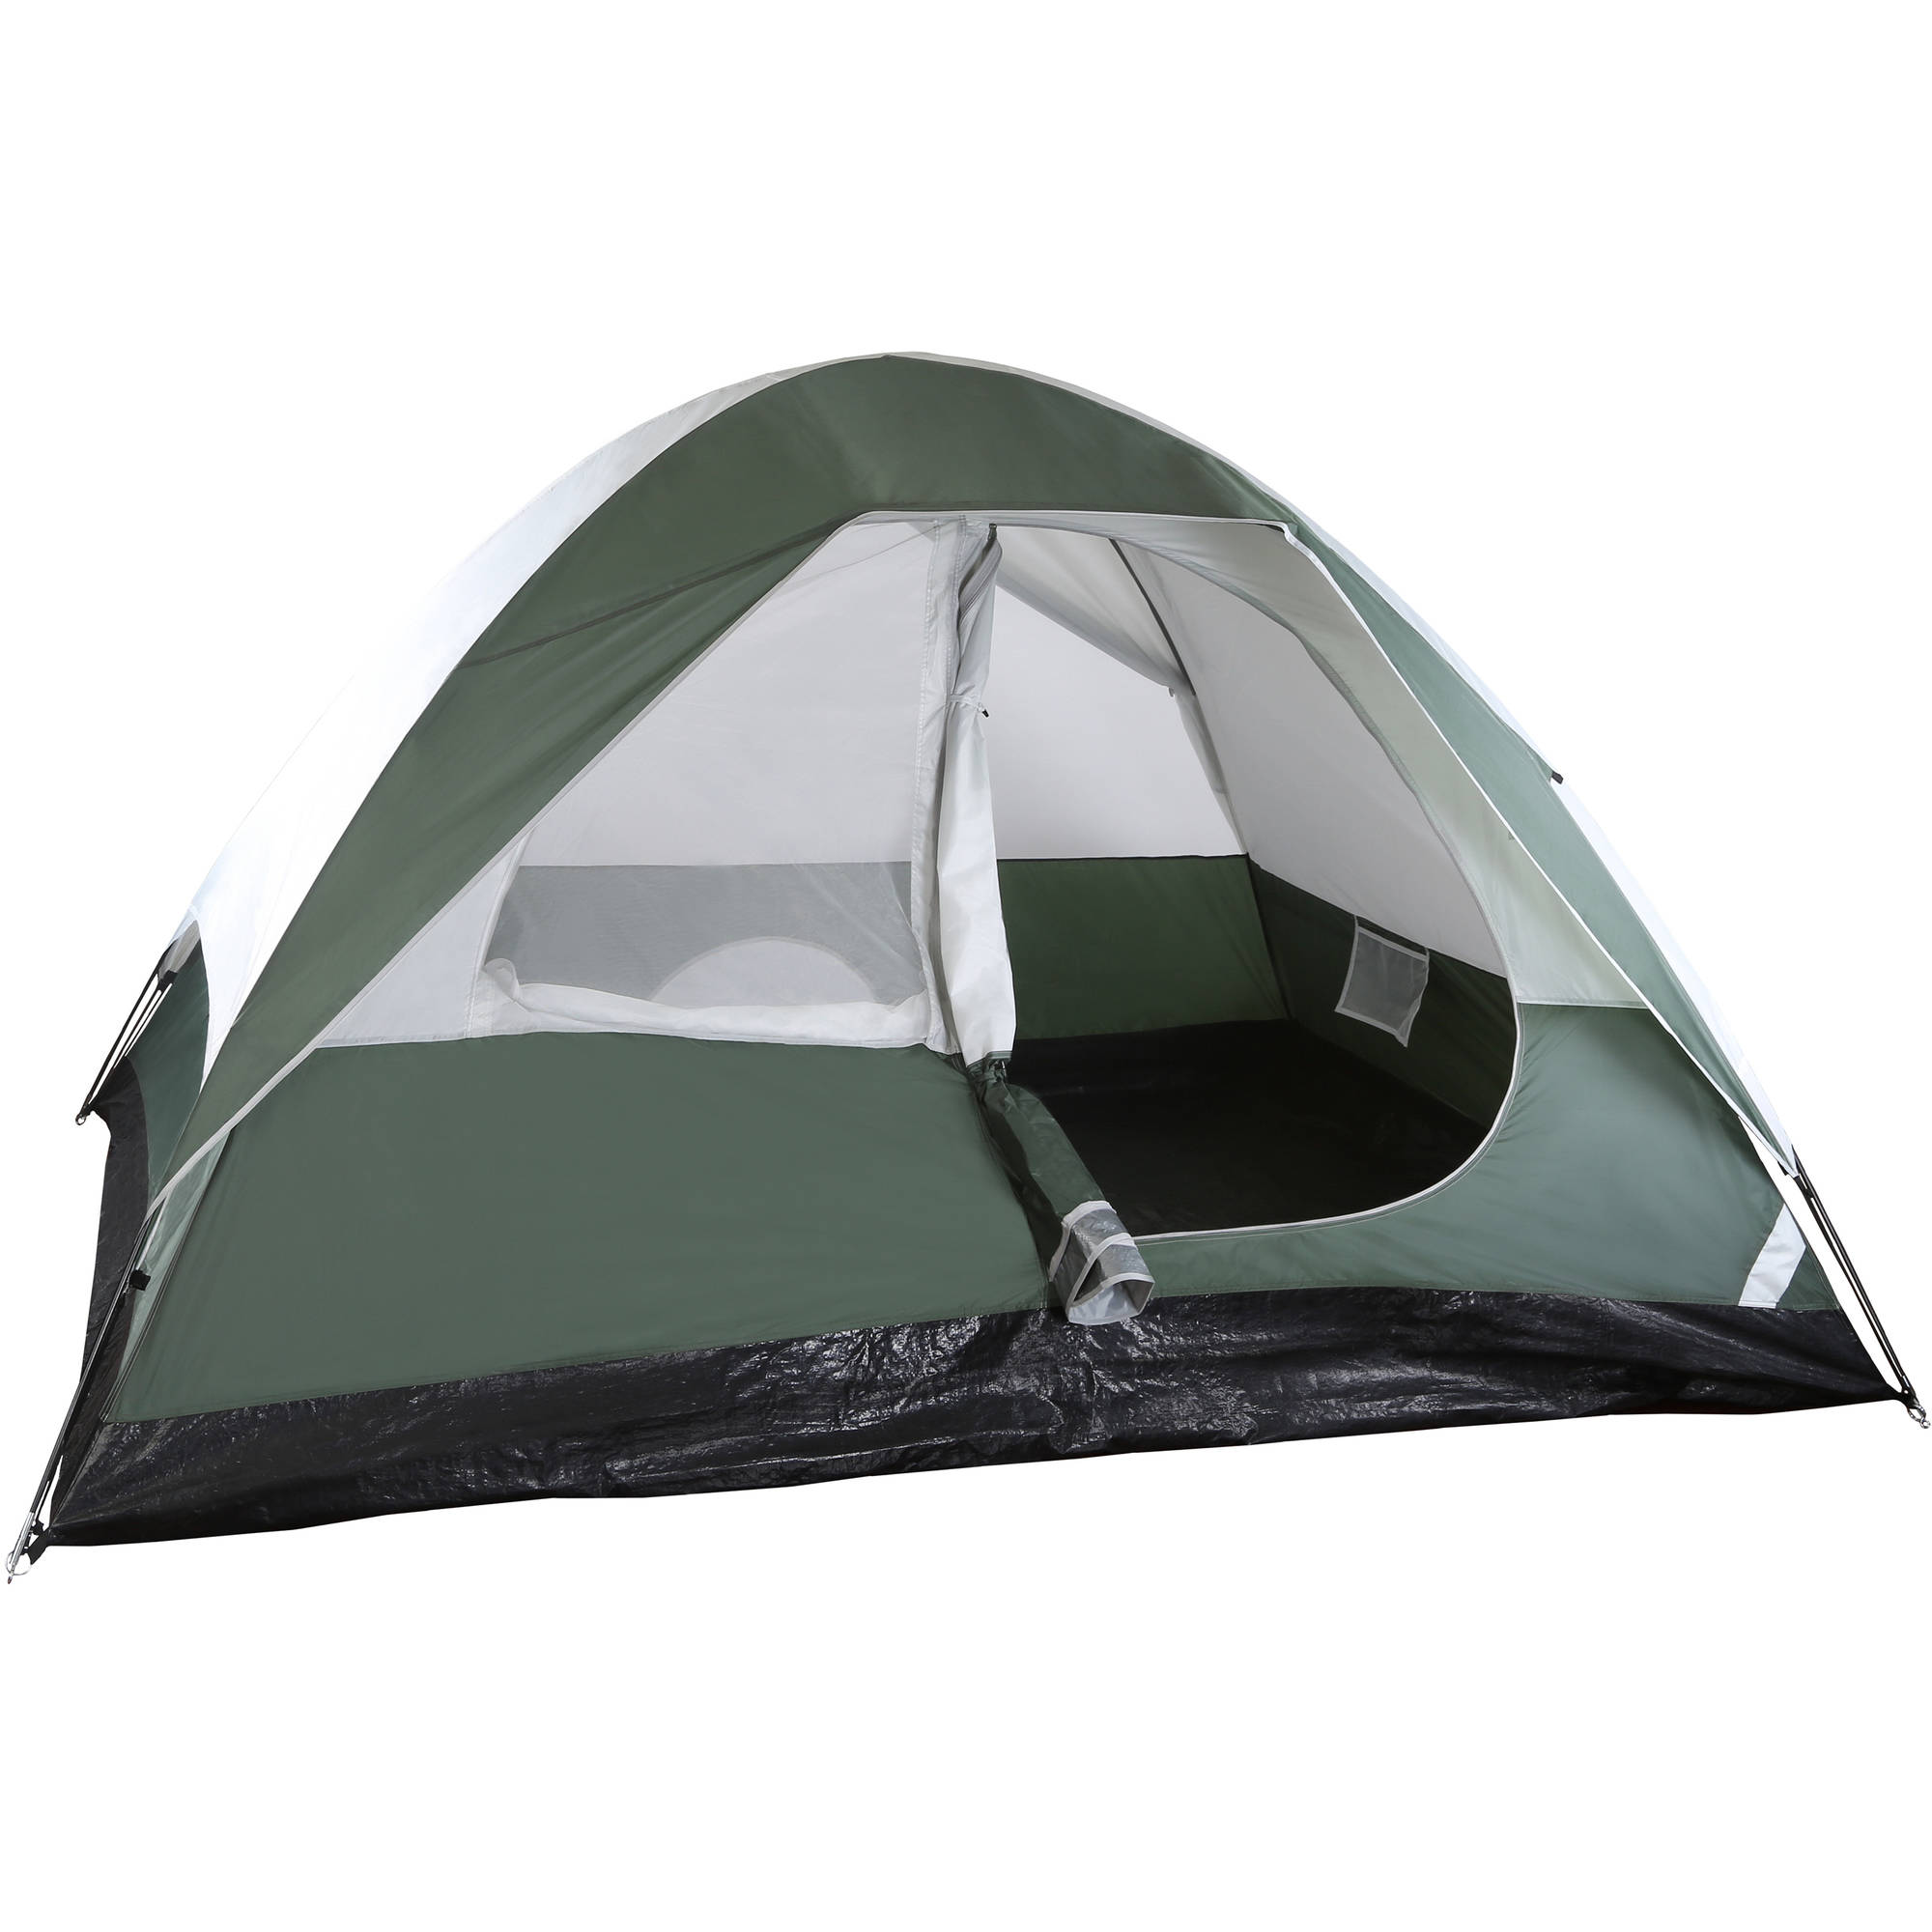 Carpa Tienda Stansport familiar, 739; x 939; x 59